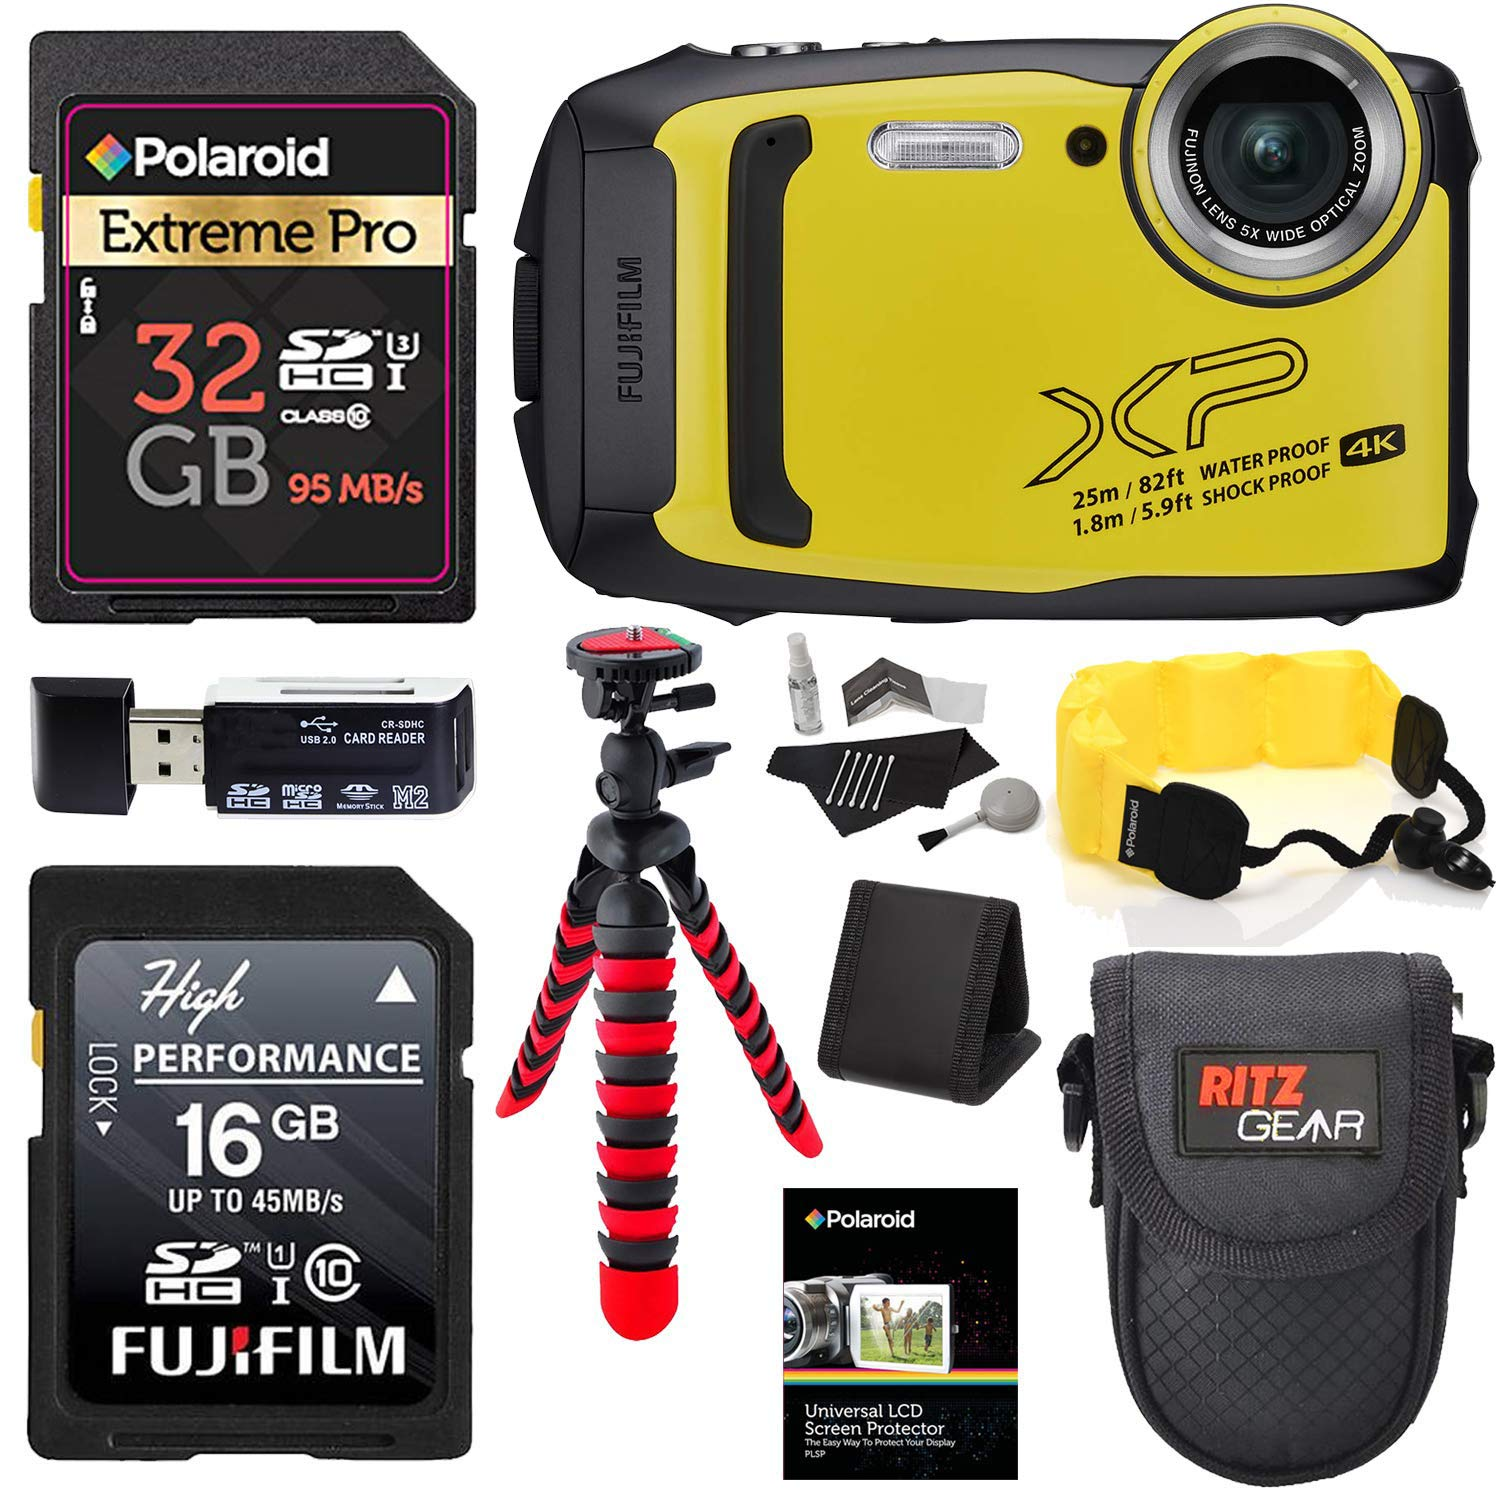 Fujifilm Finepix XP140 (Yellow) Point and Shoot Camera Bundle with Memory Cards, Tripod, Float Strap, Memory Card Reader and More